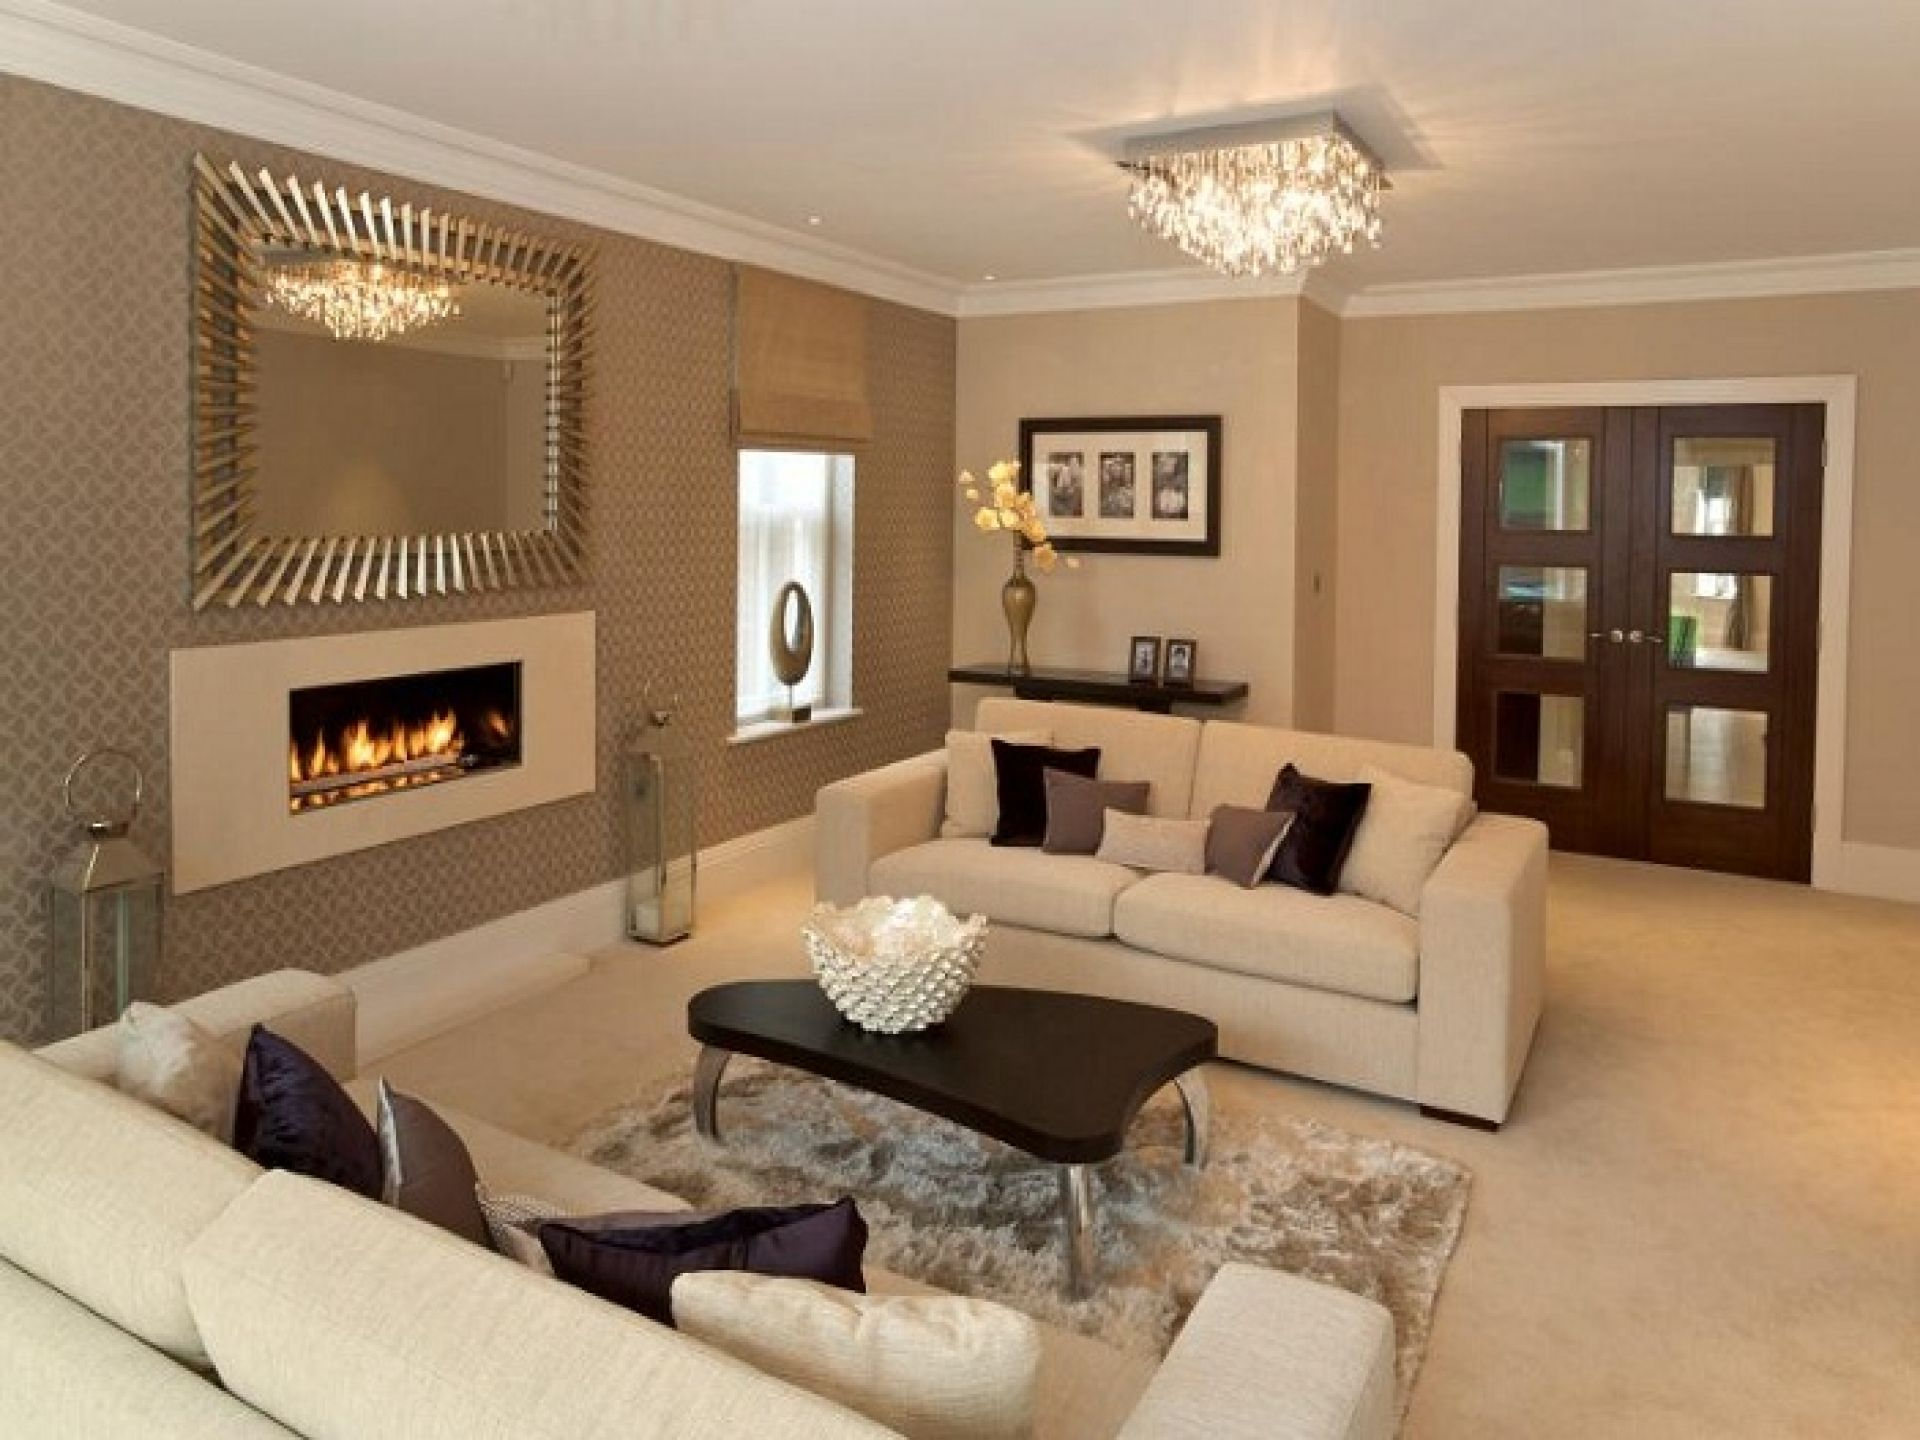 15 EXCLUSIVE LIVING ROOM IDEAS FOR THE PERFECT HOME  Living room  Paint colors for living room